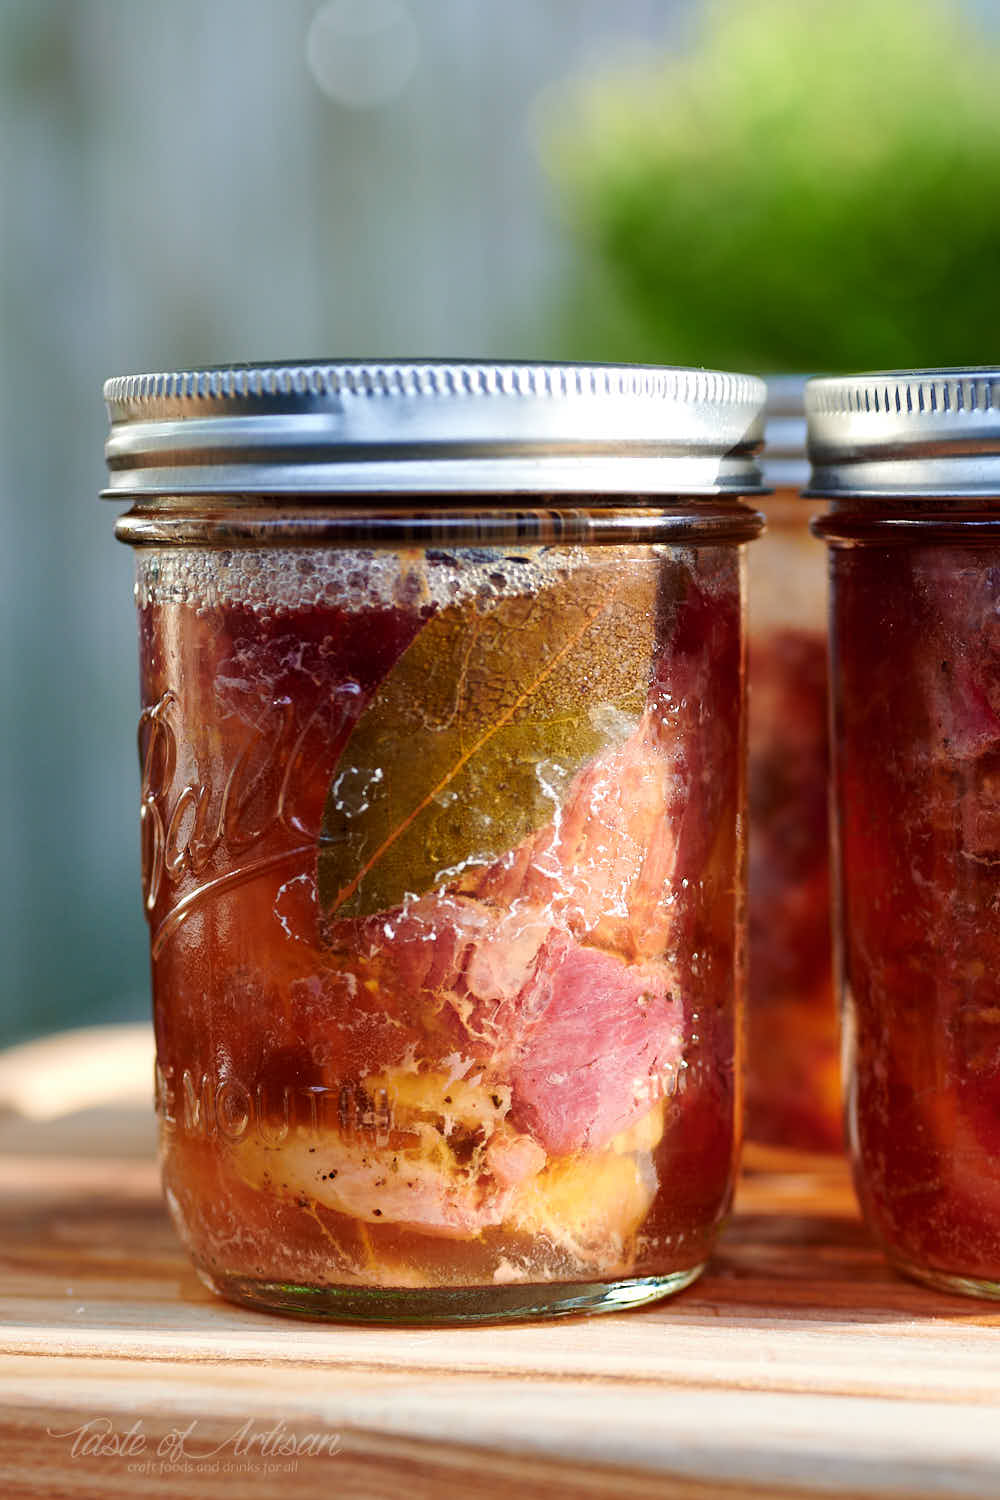 Canned beef in a glass jar with golden juice.